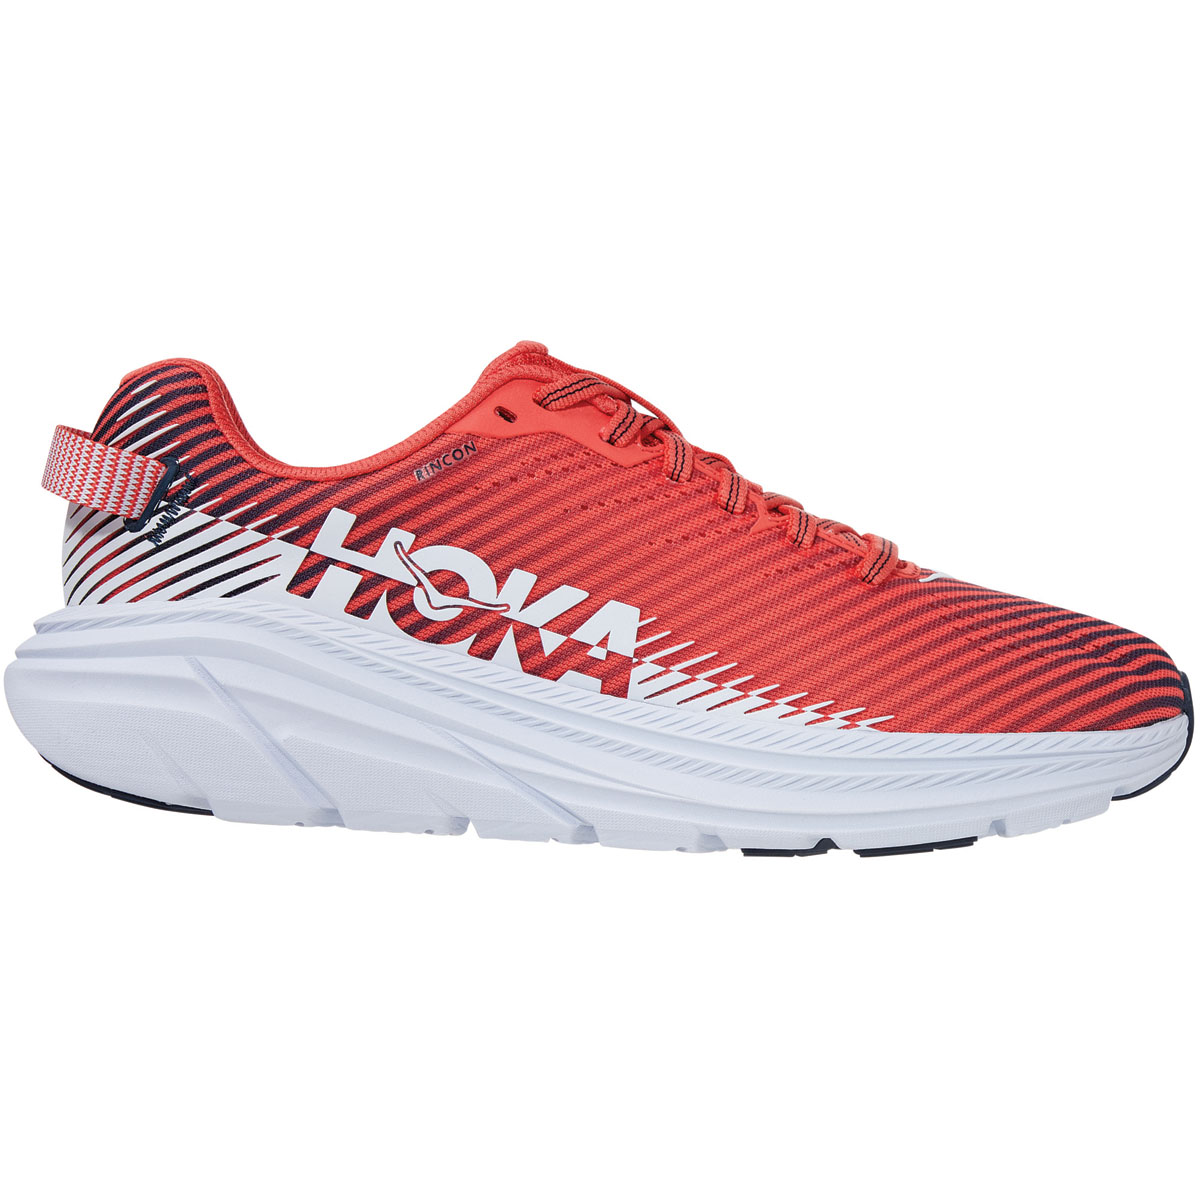 Women's Hoka One One Rincon 2 Running Shoe - Color: Hot Coral/White - Size: 5 - Width: Regular, Hot Coral/White, large, image 1